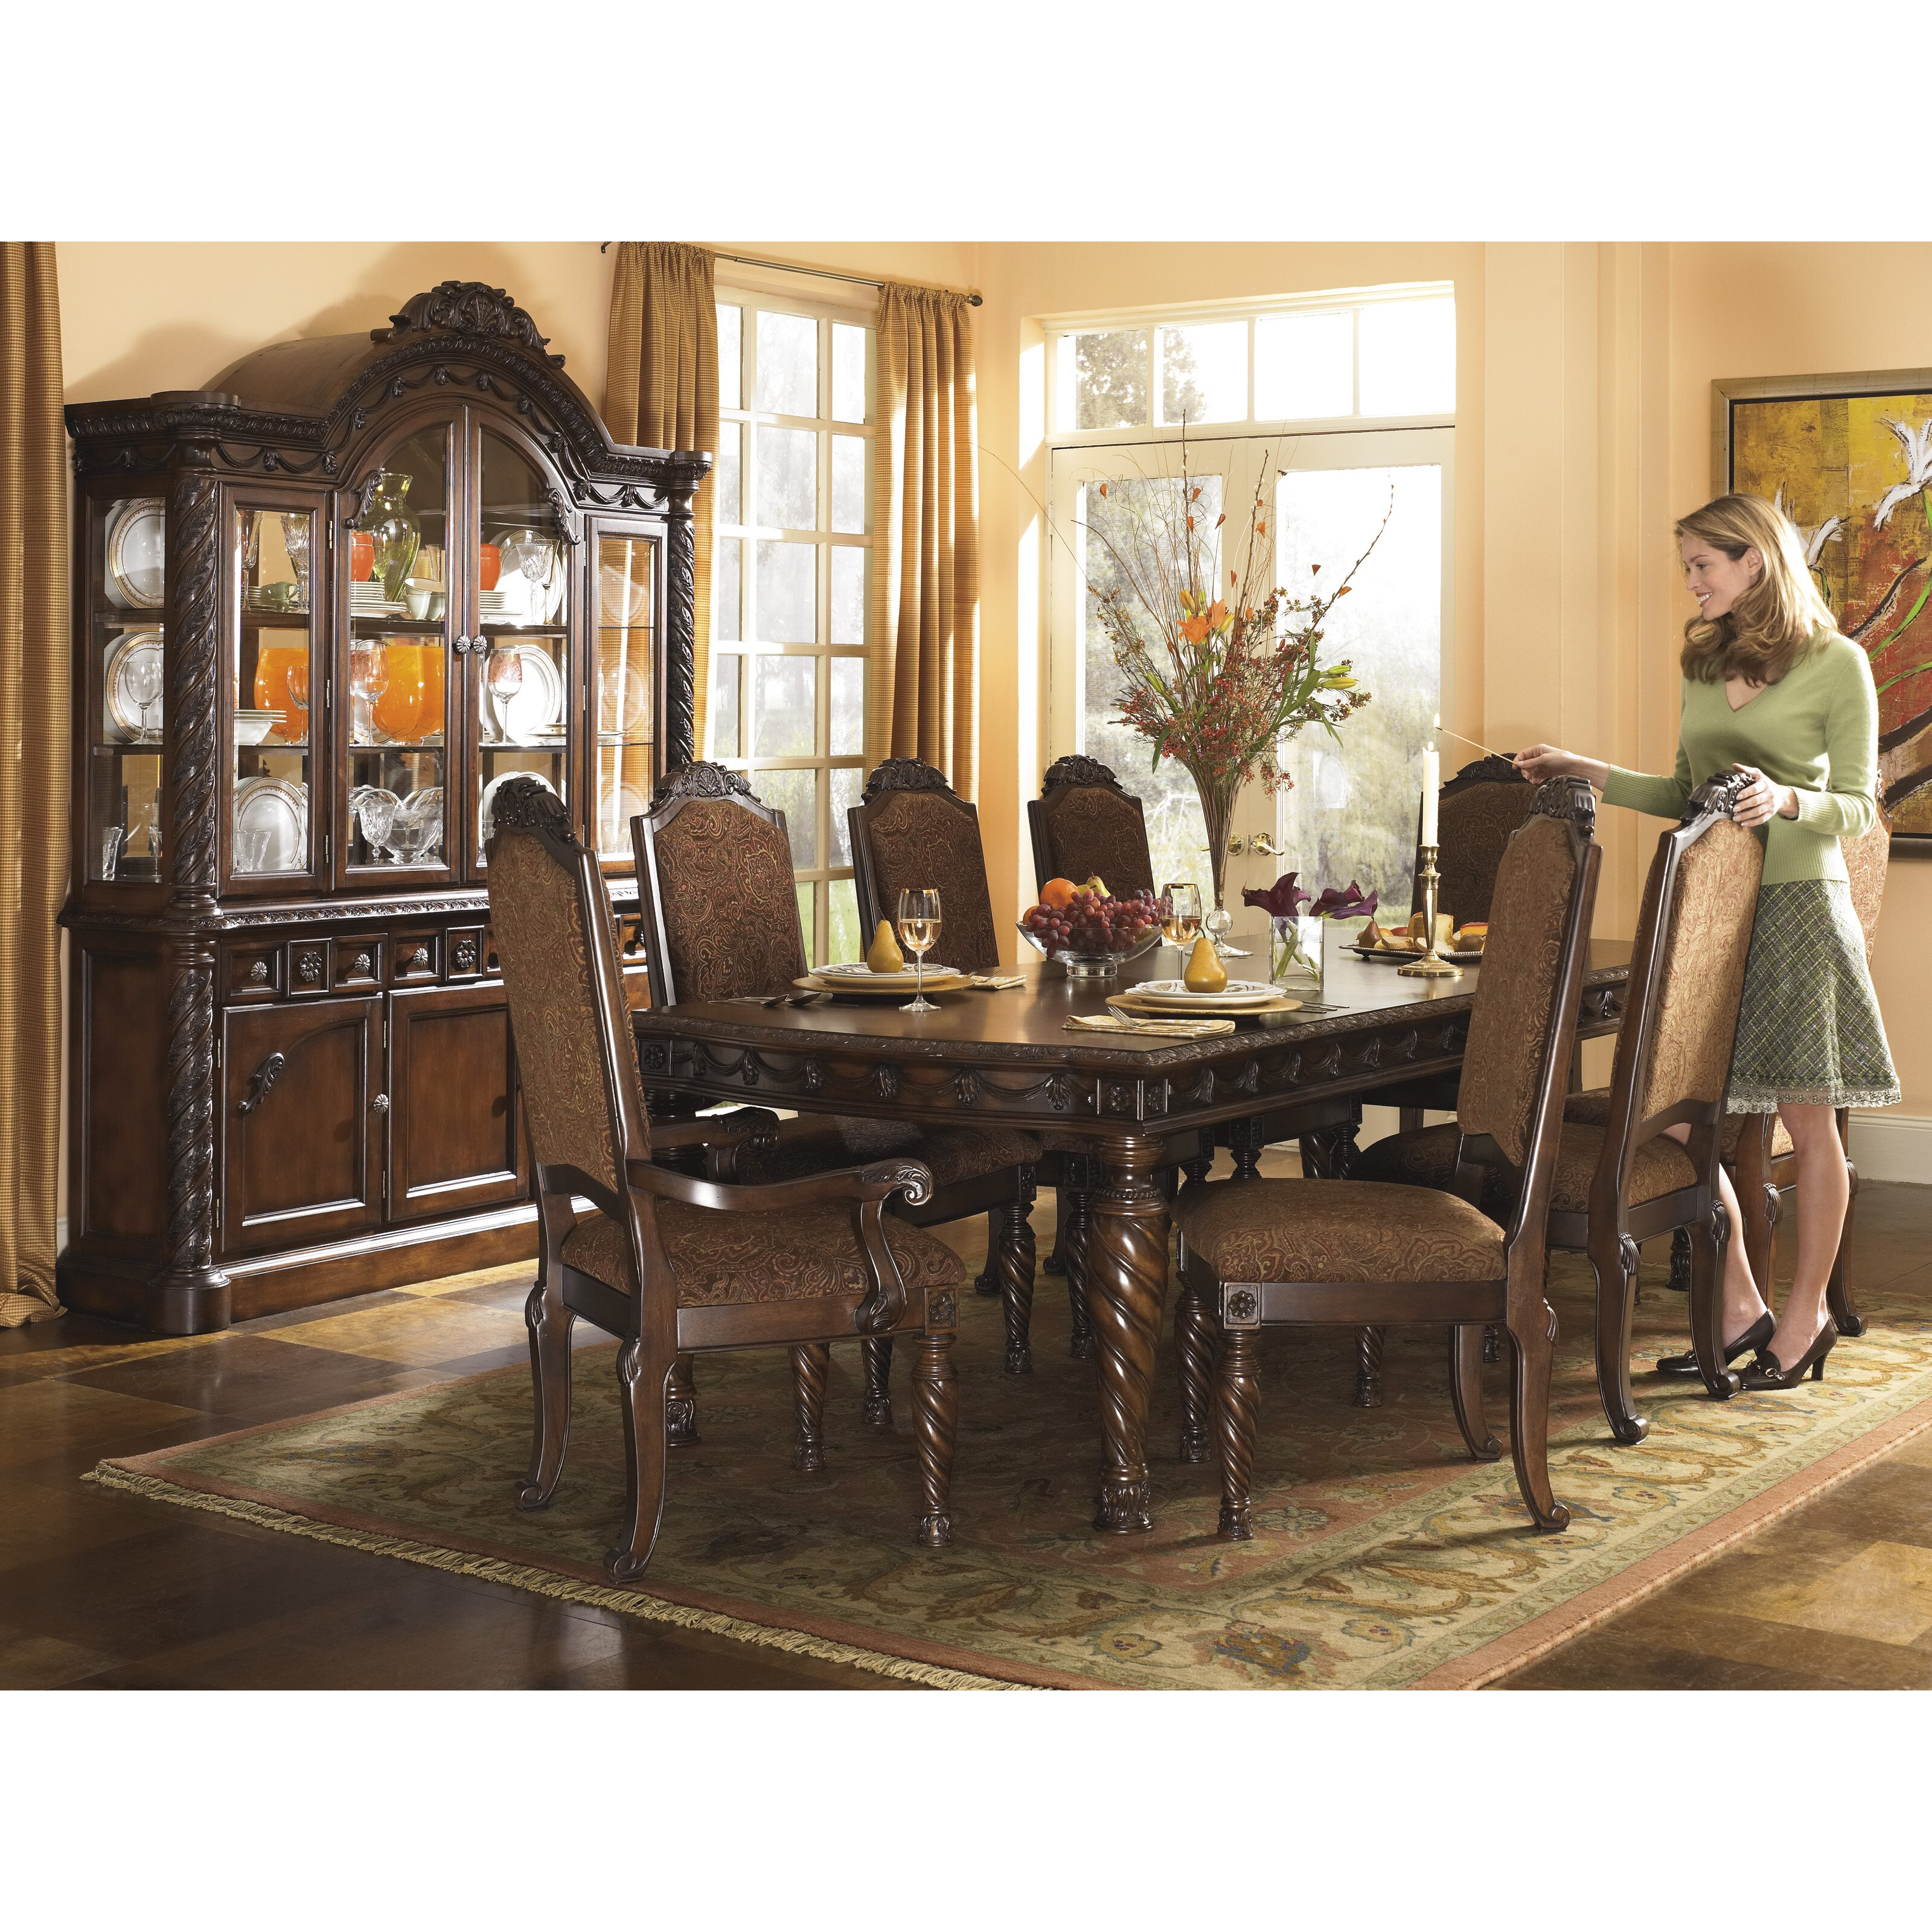 Wildon home north shore dining room china top hutch for Wildon home dining